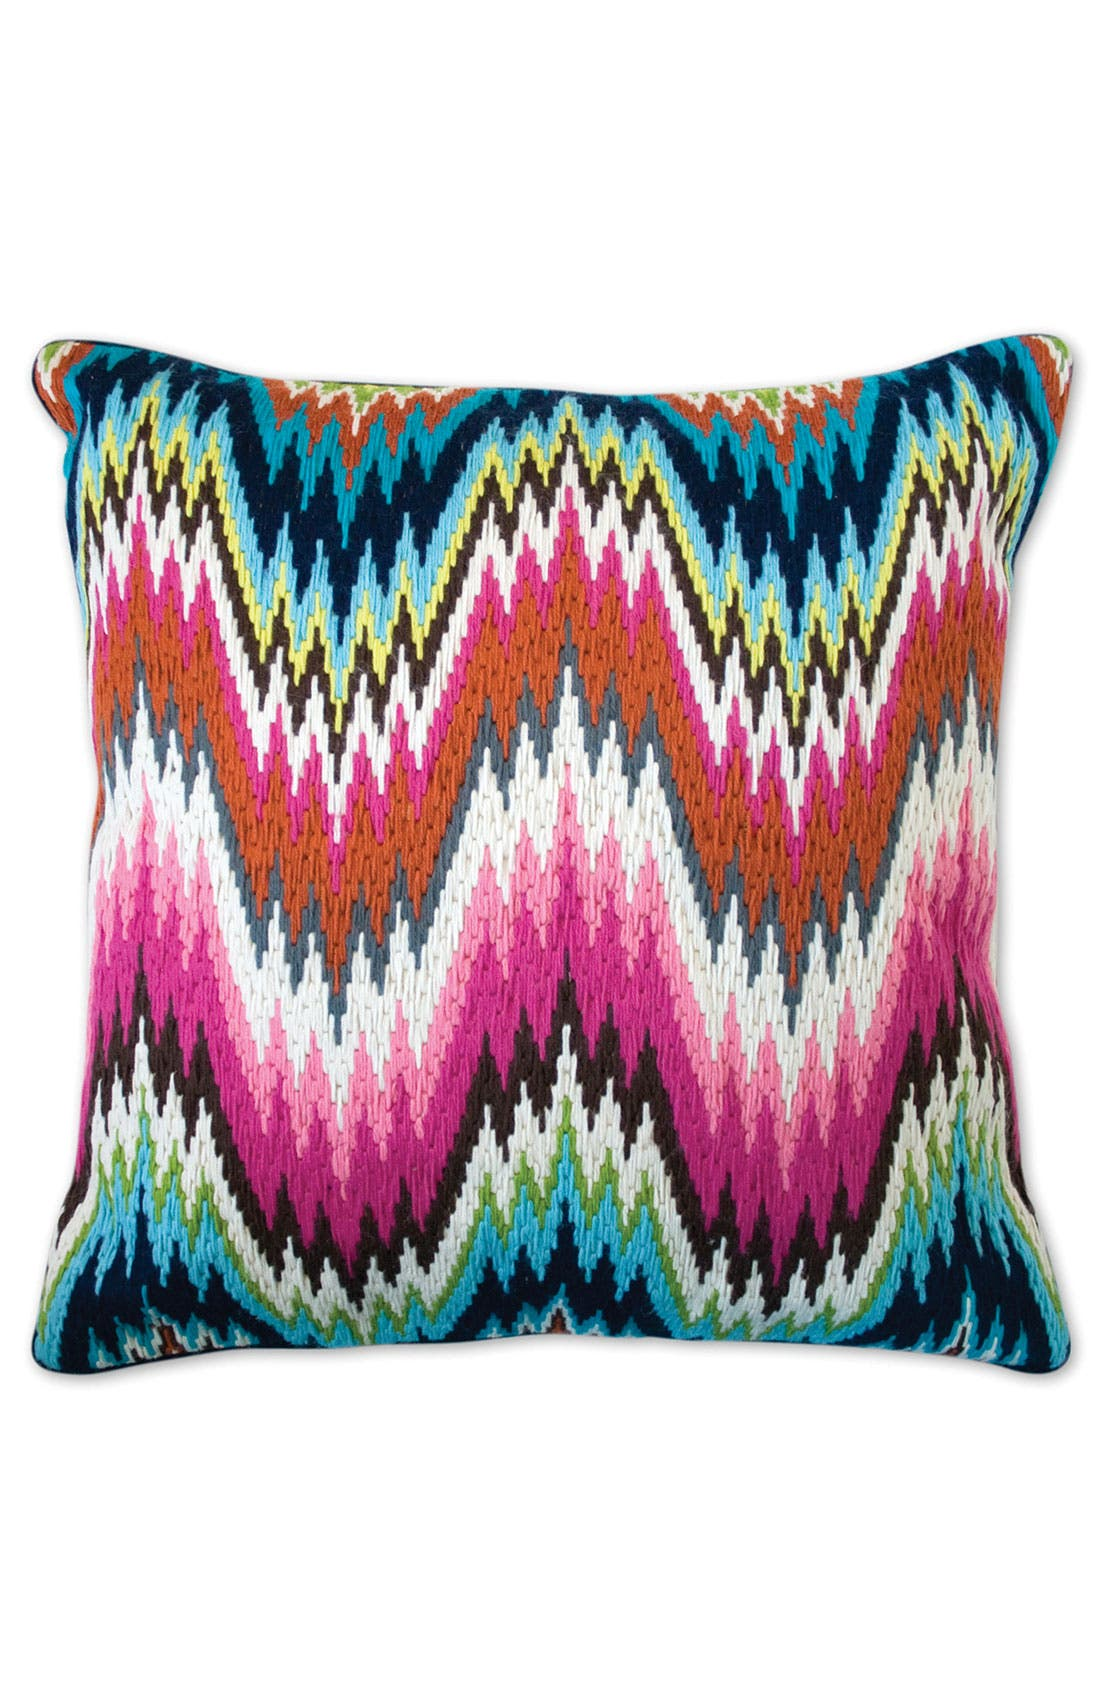 Alternate Image 1 Selected - Jonathan Adler 'Worth Avenue Bargello' Needlepoint Pillow